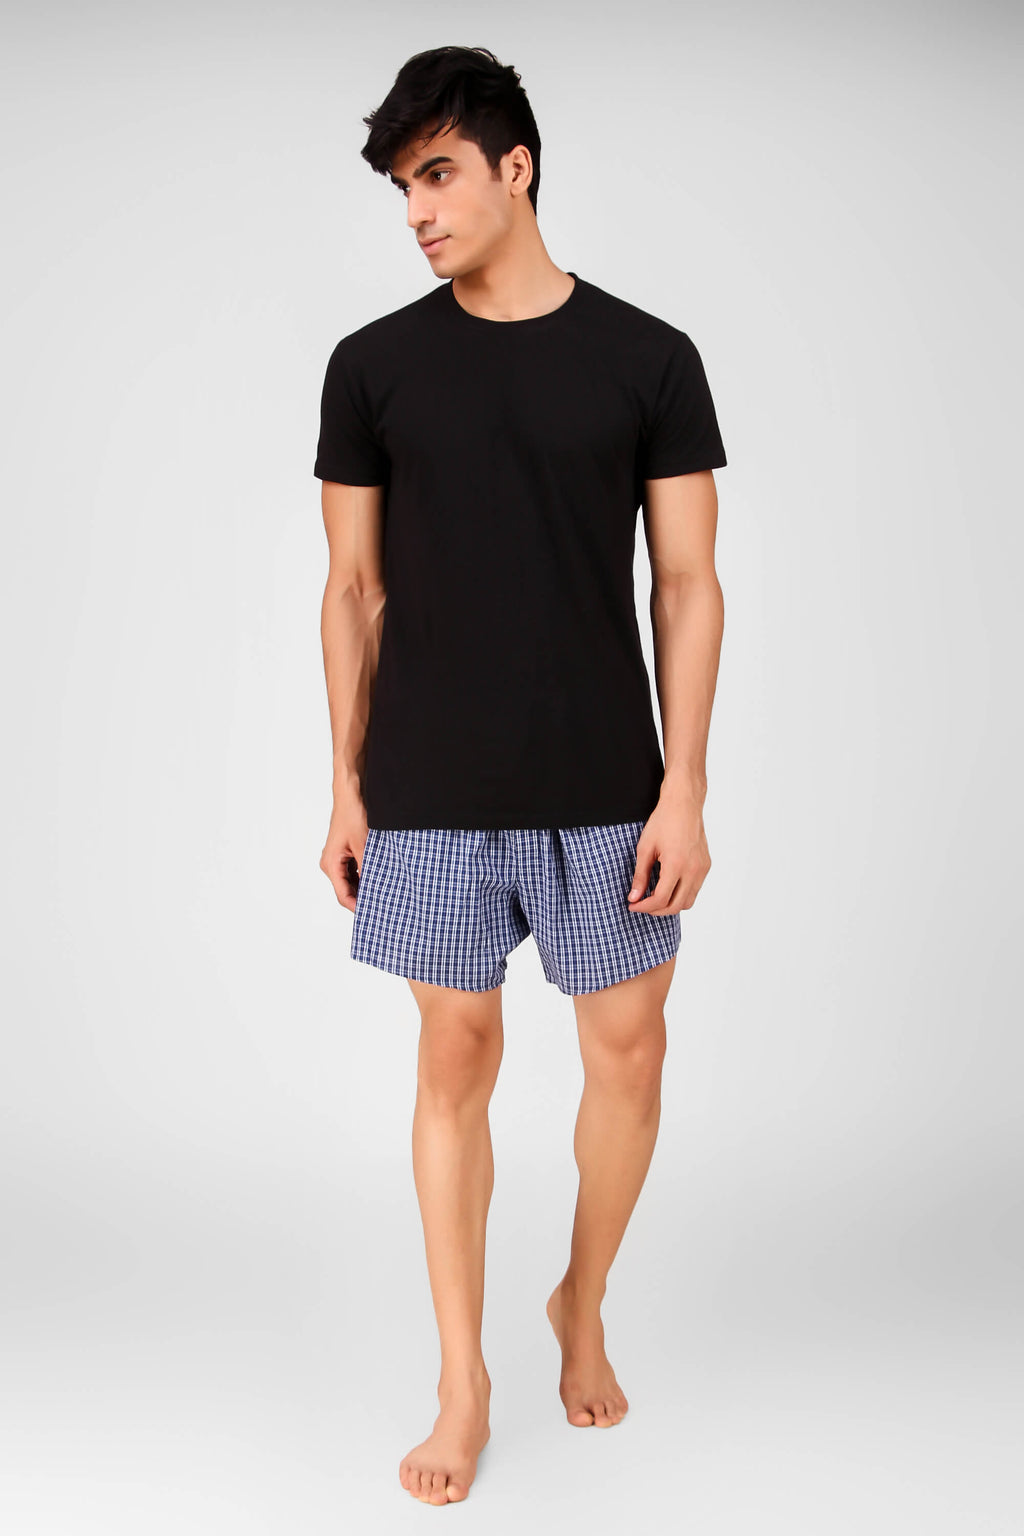 Boxer, Men's Shorts